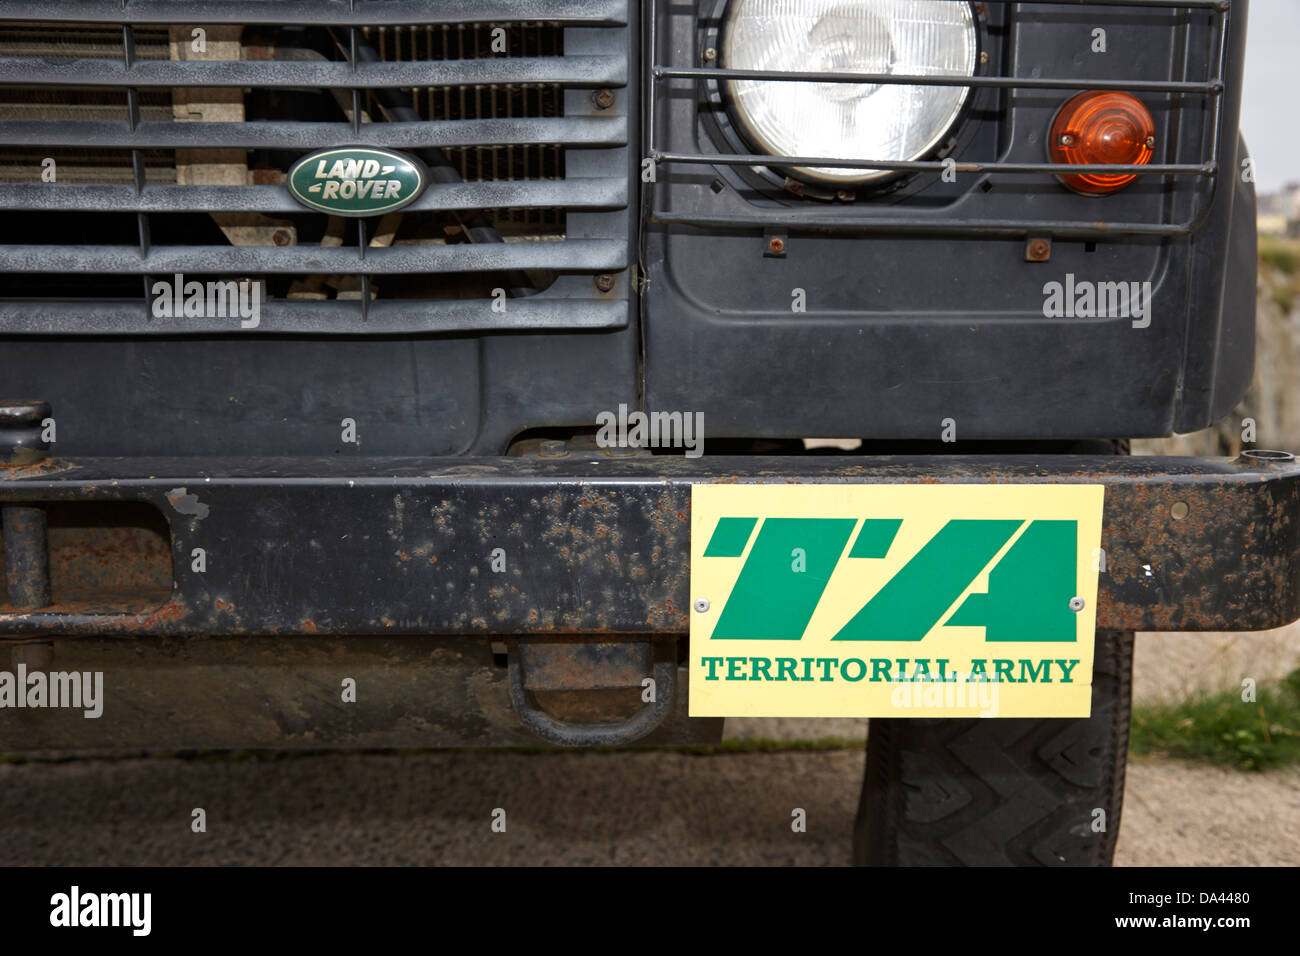 British Army territorial army logo on a landrover in the uk - Stock Image